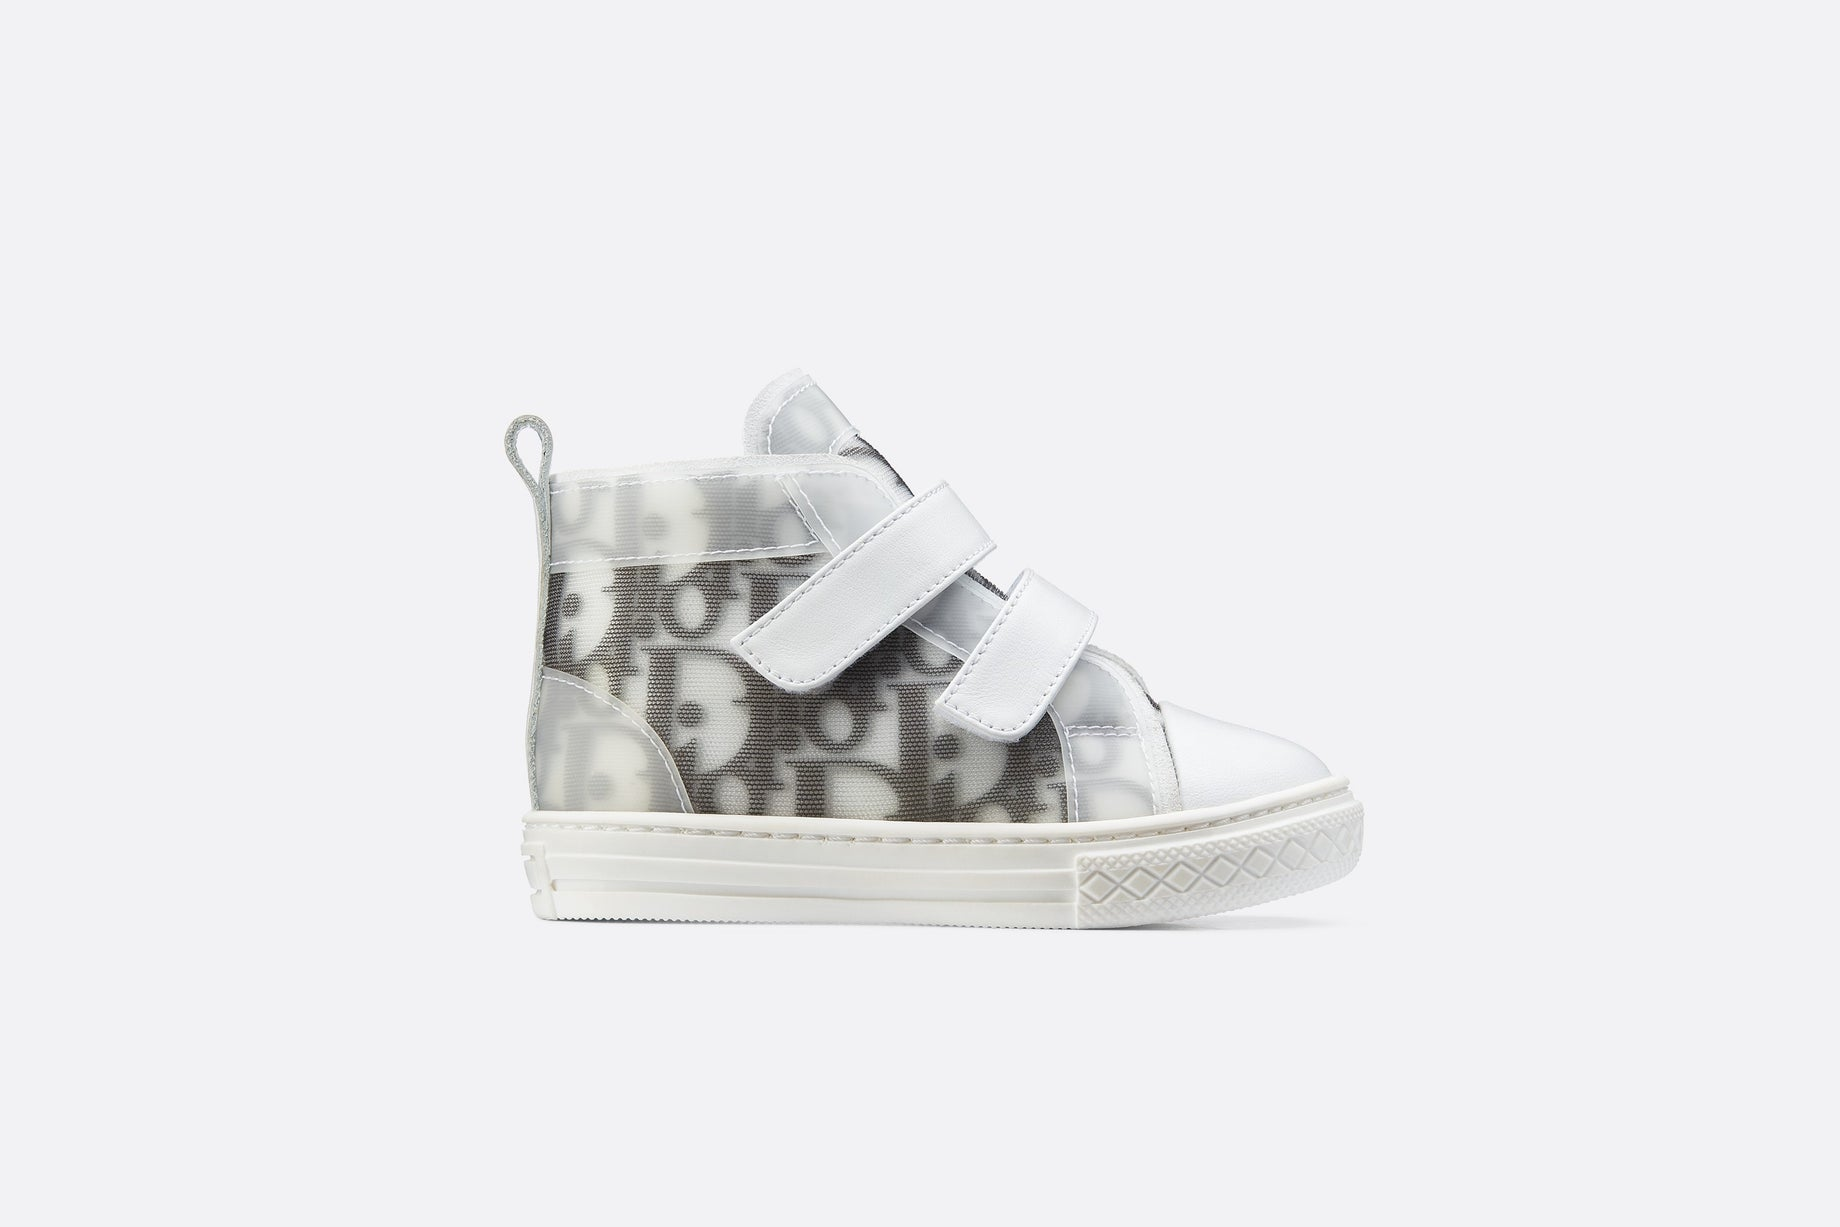 B23 High-Top Sneaker • White and Black Dior Oblique Technical Fabric